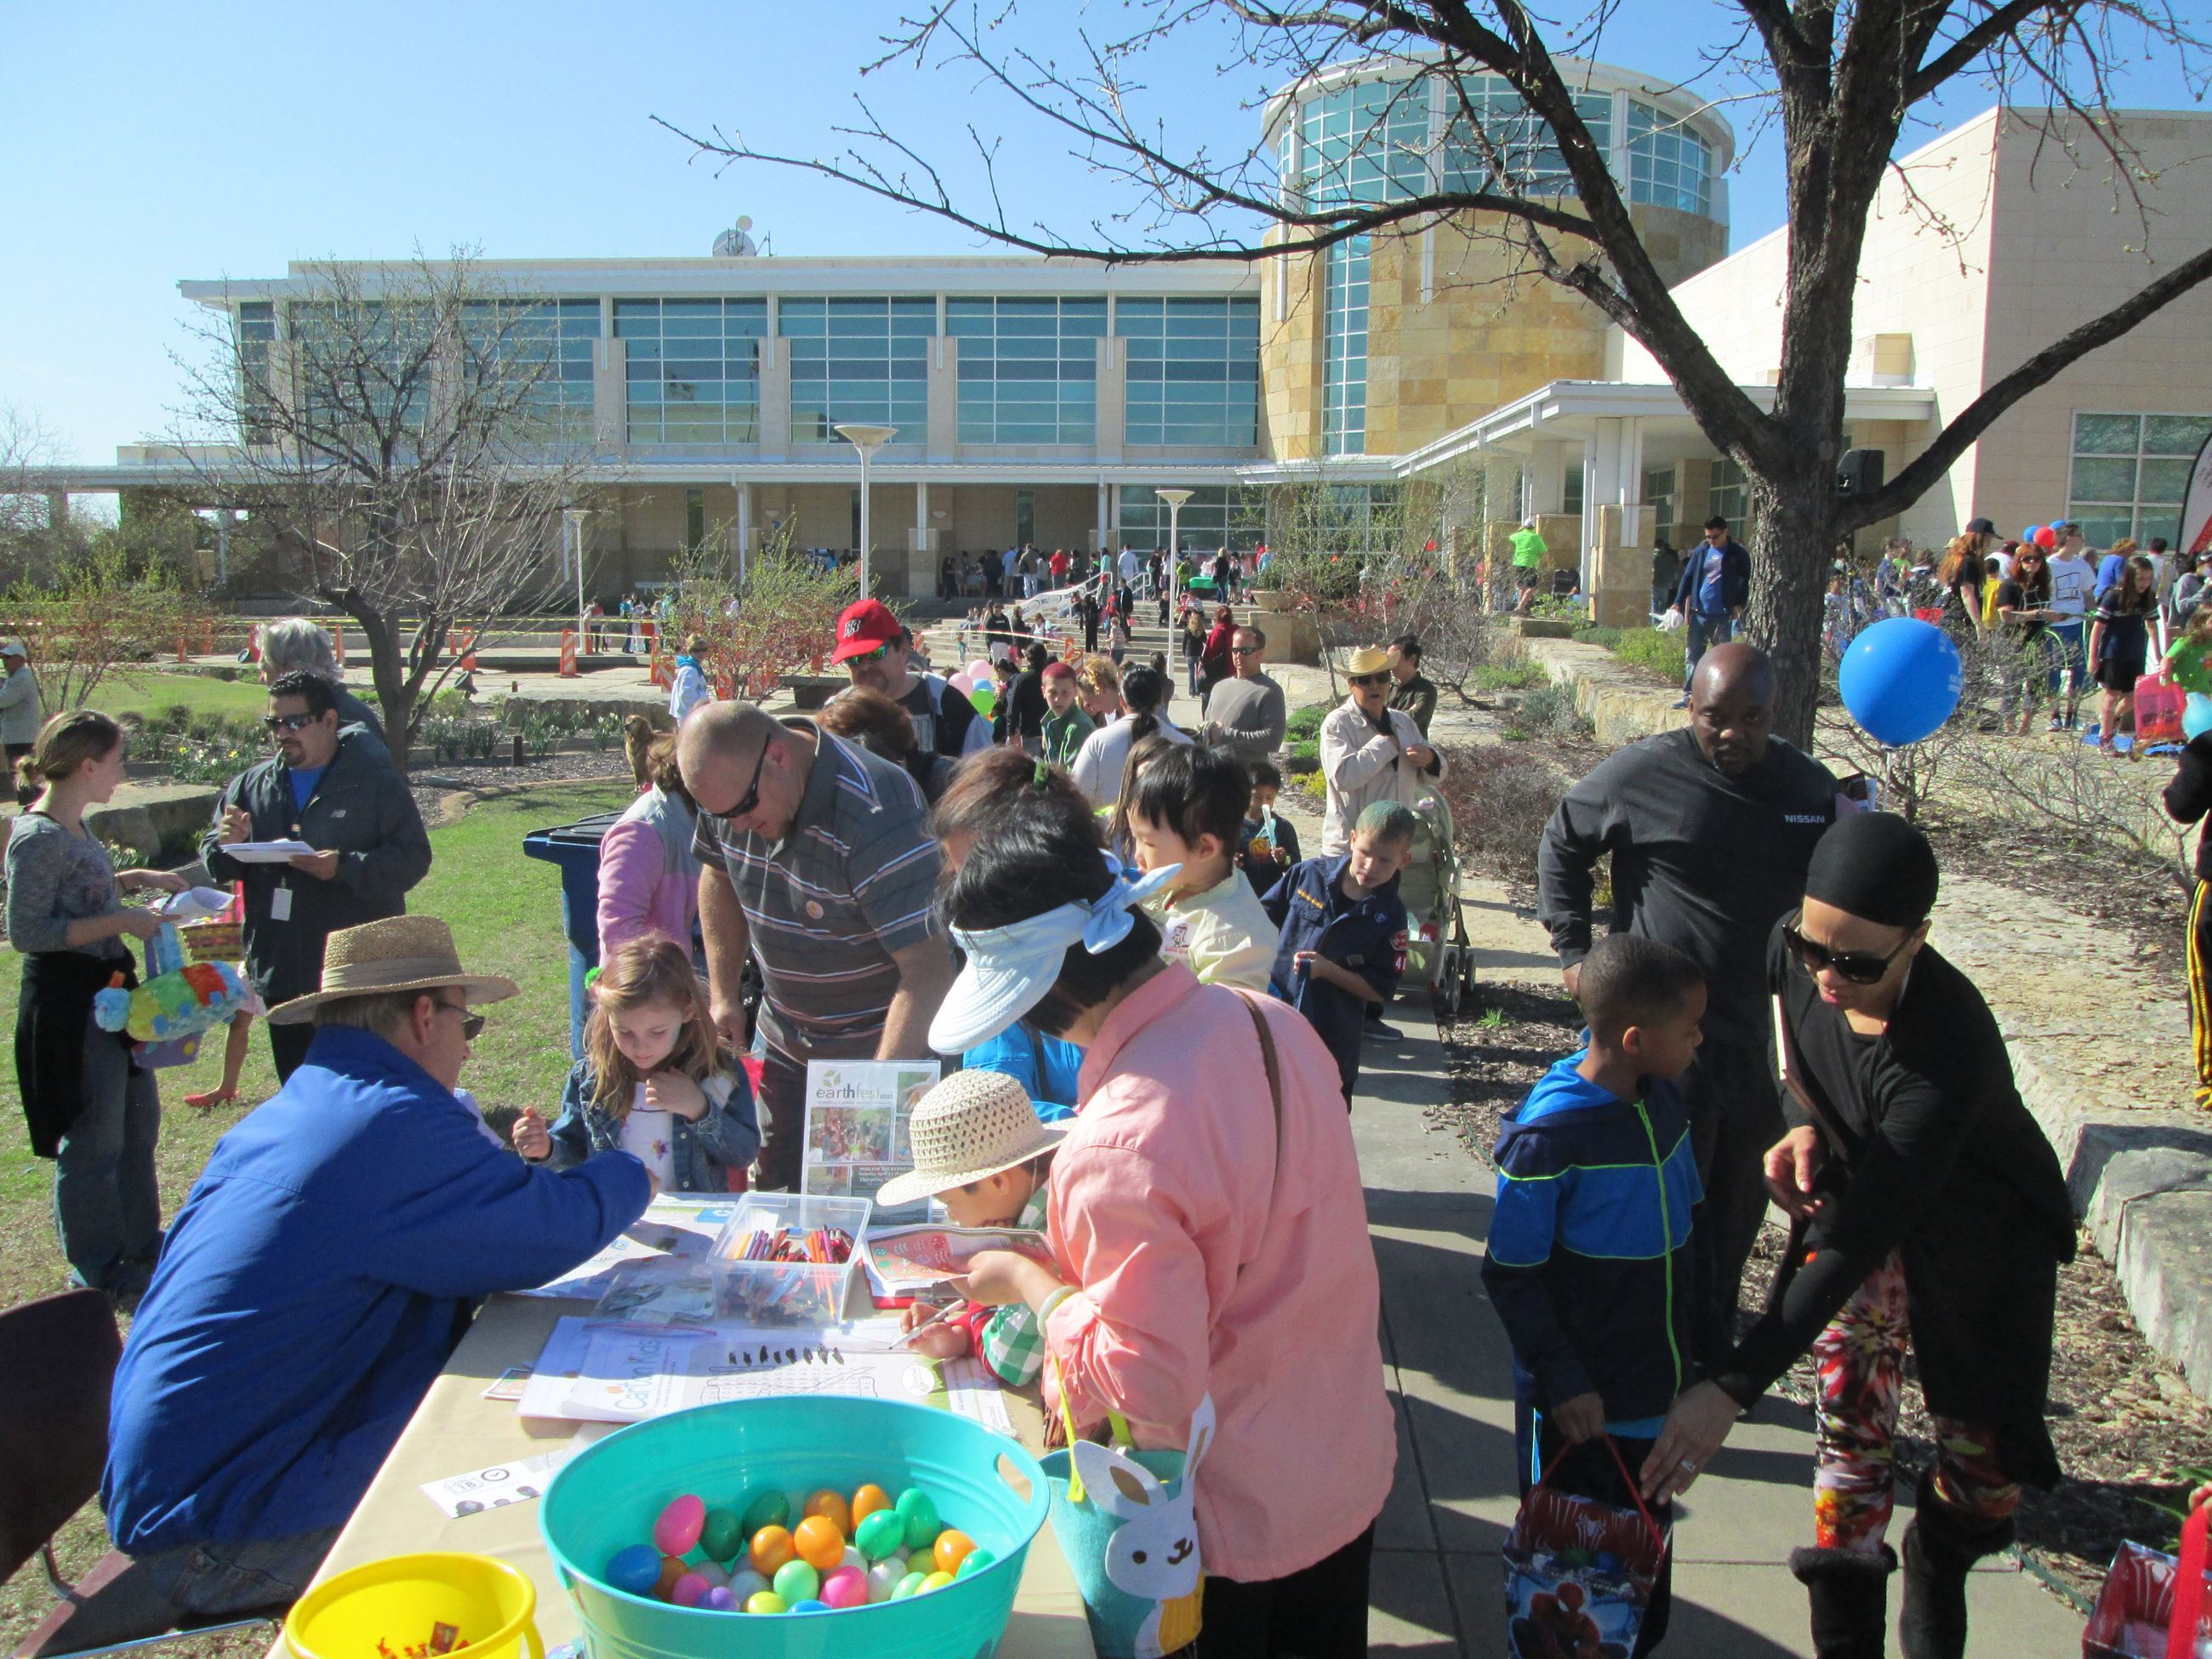 A large group of families participating in an Easter egg event